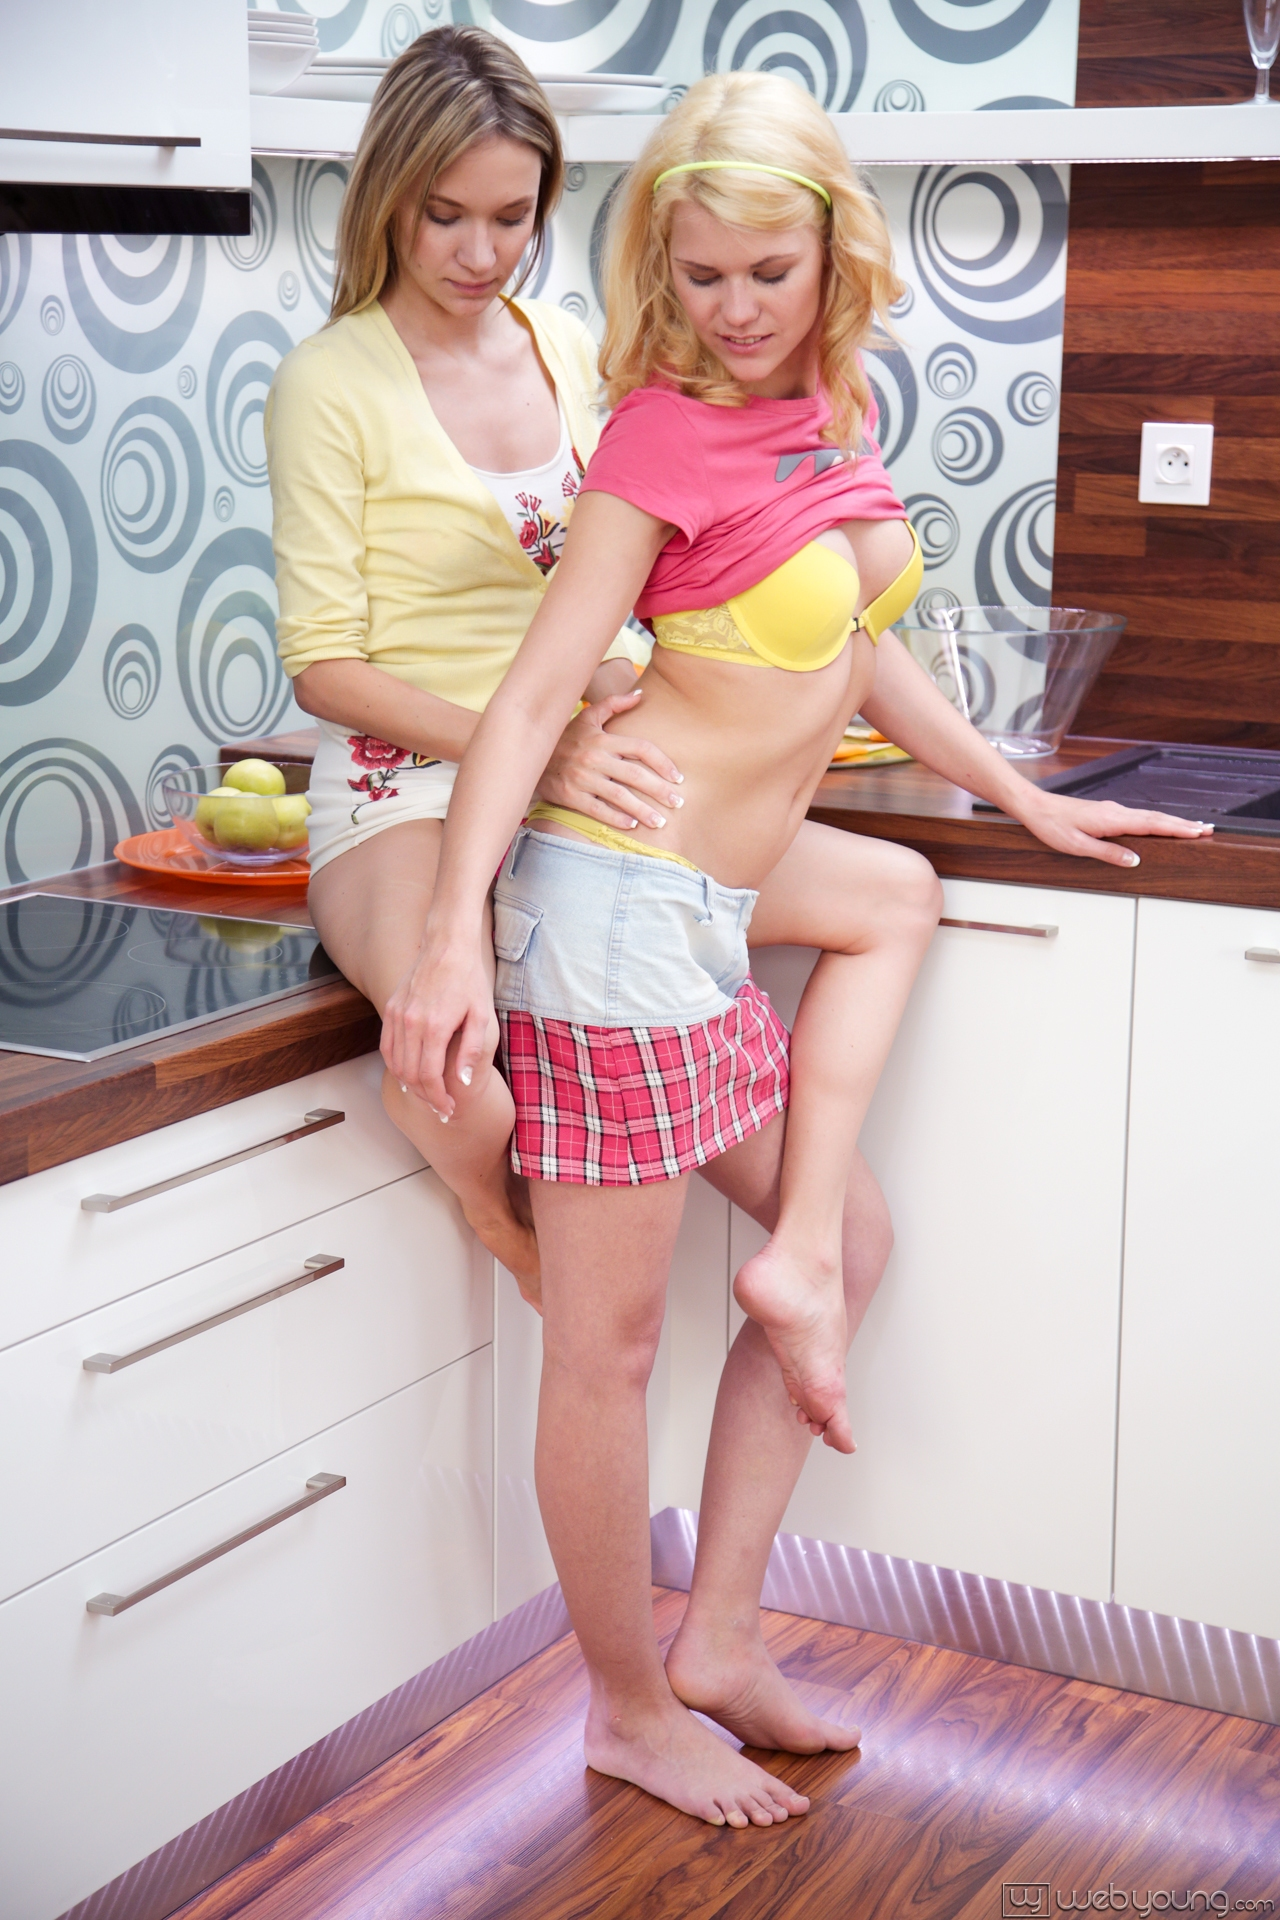 Angel piaff and delphine hot kitchen sex 4